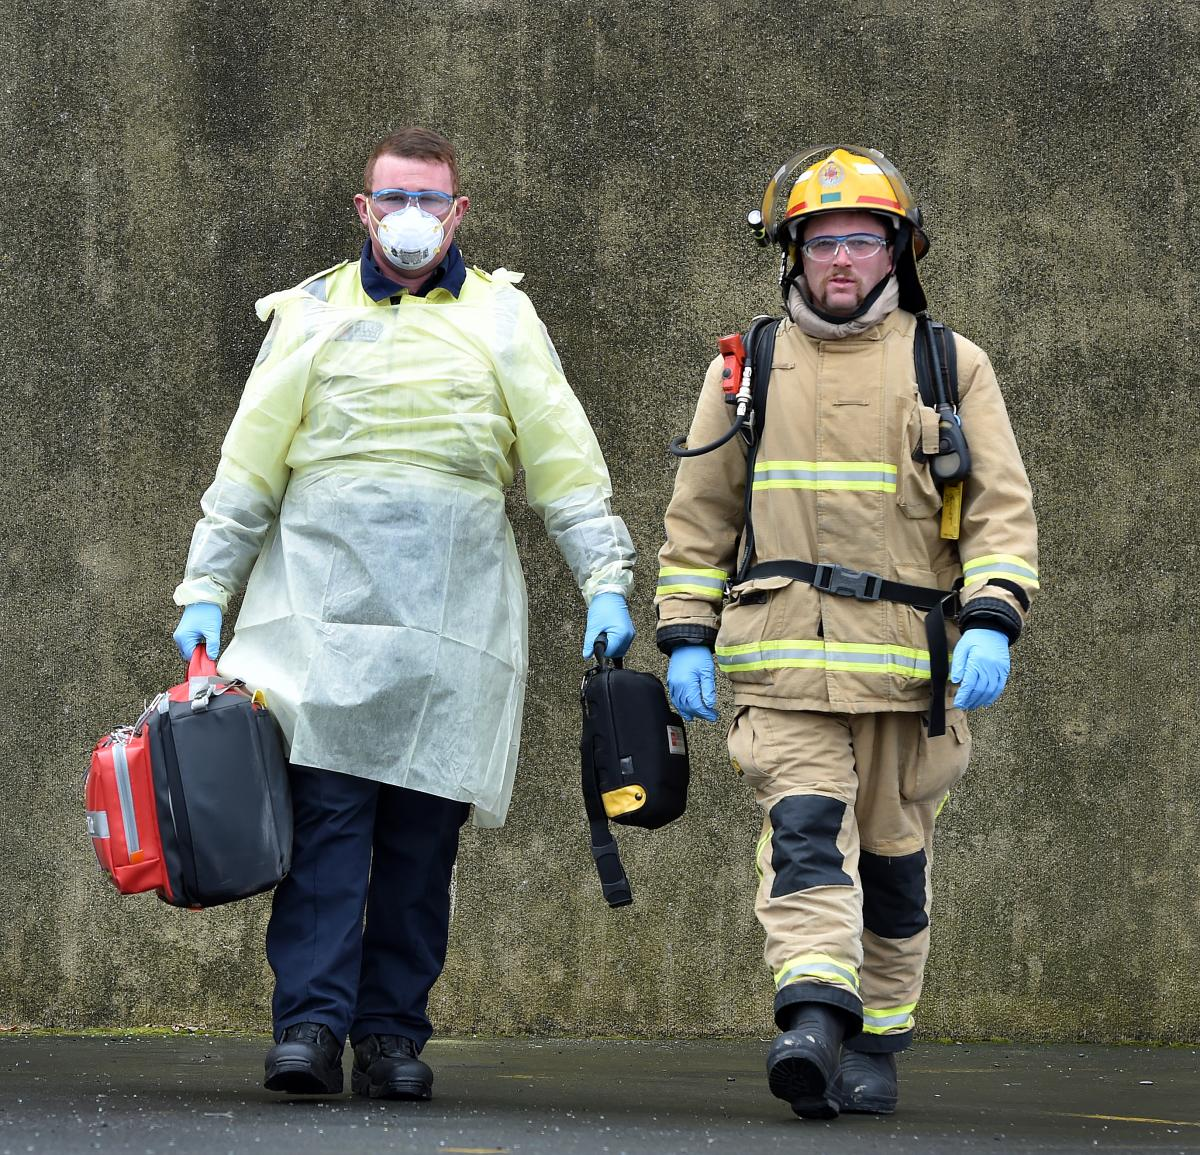 Firefighters gear up to safeguard against exposure